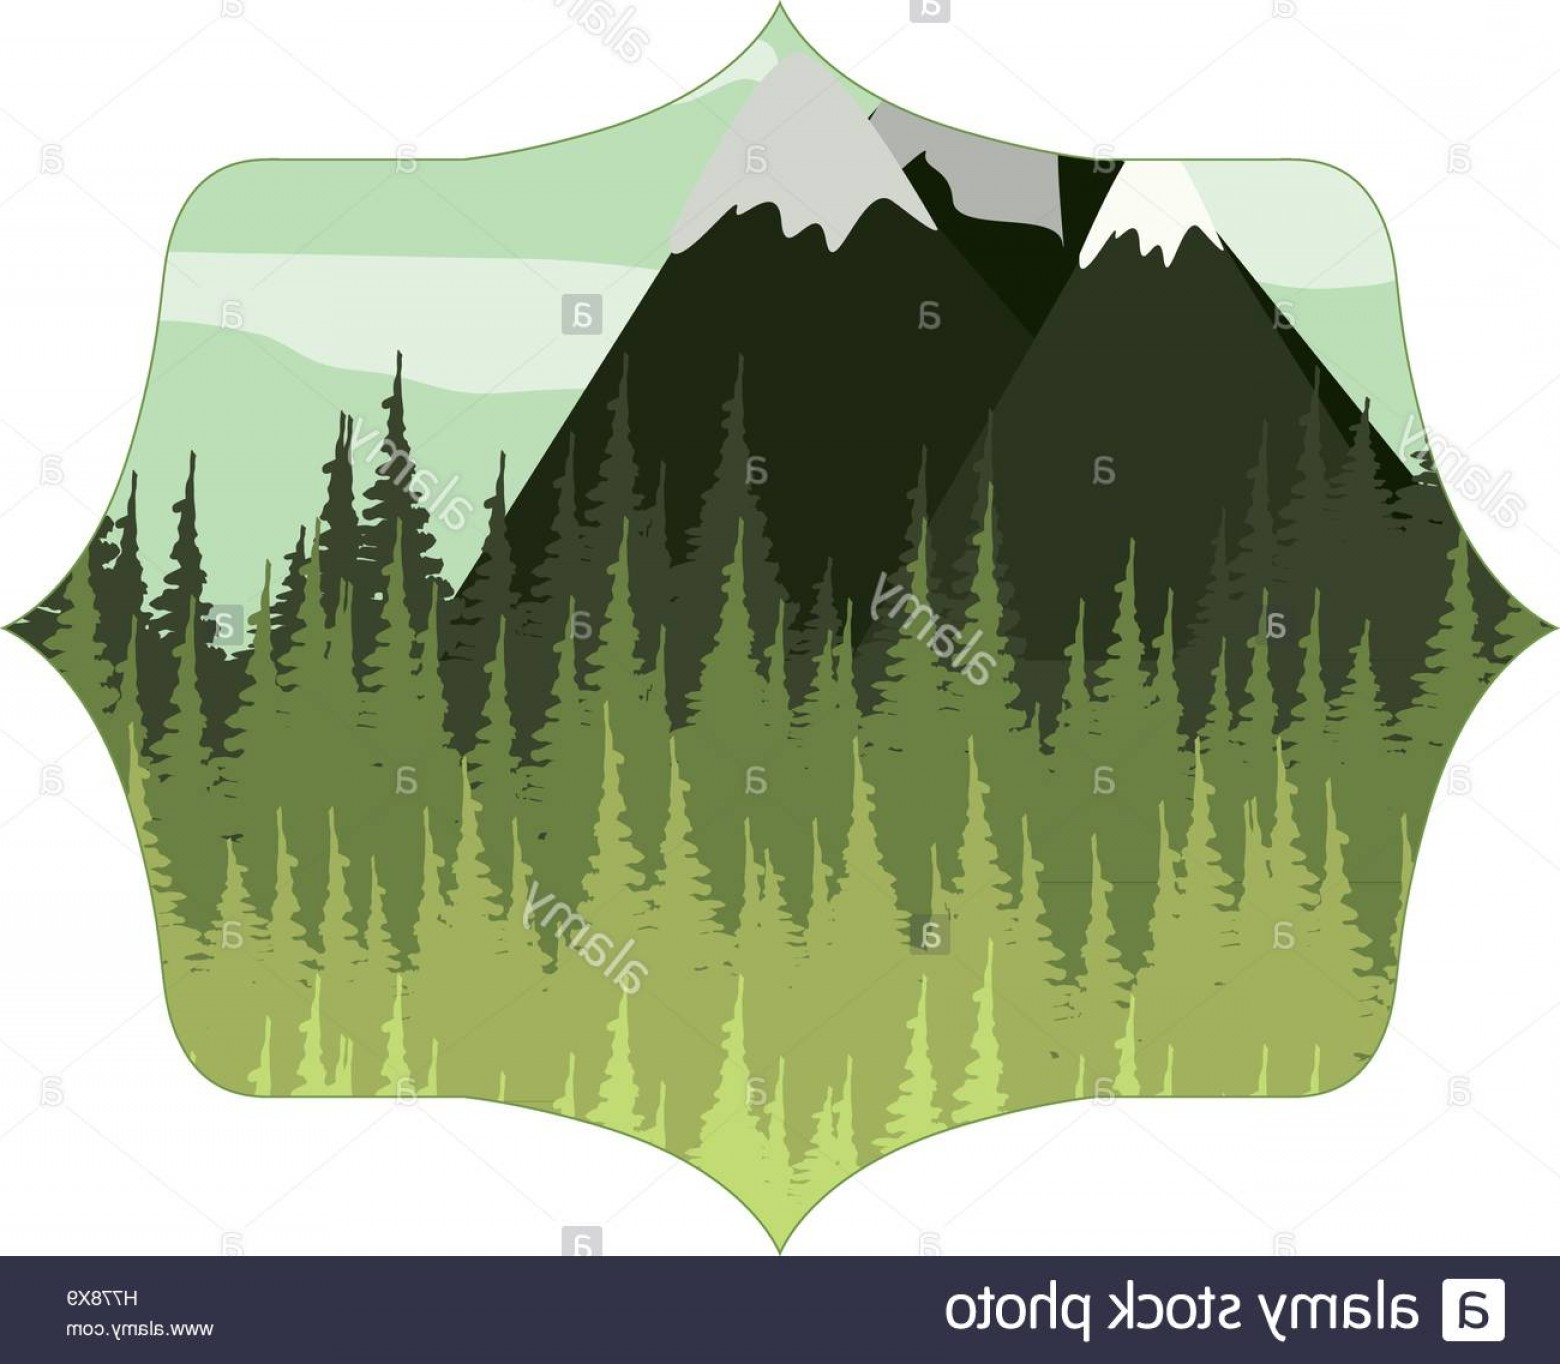 Snowy Mountain Vector Graphics: Stock Photo Frame With Forest And Snowy Mountains Vector Illustration